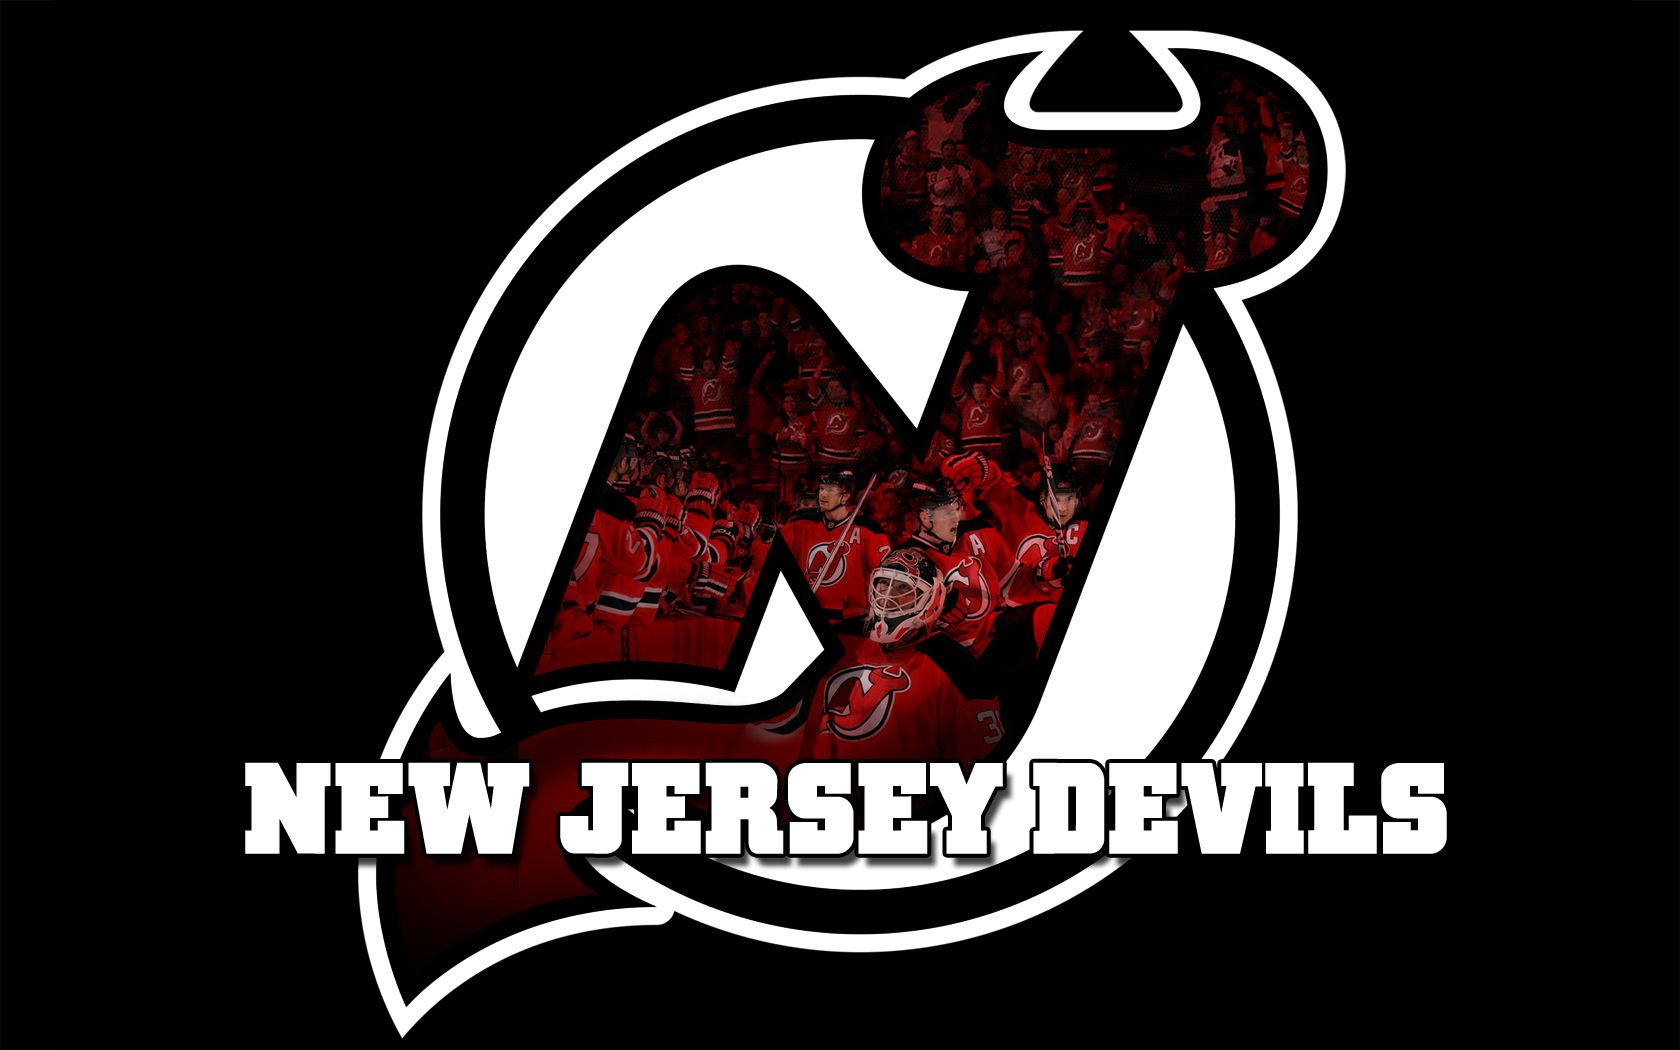 New Jersey Devils Wallpapers